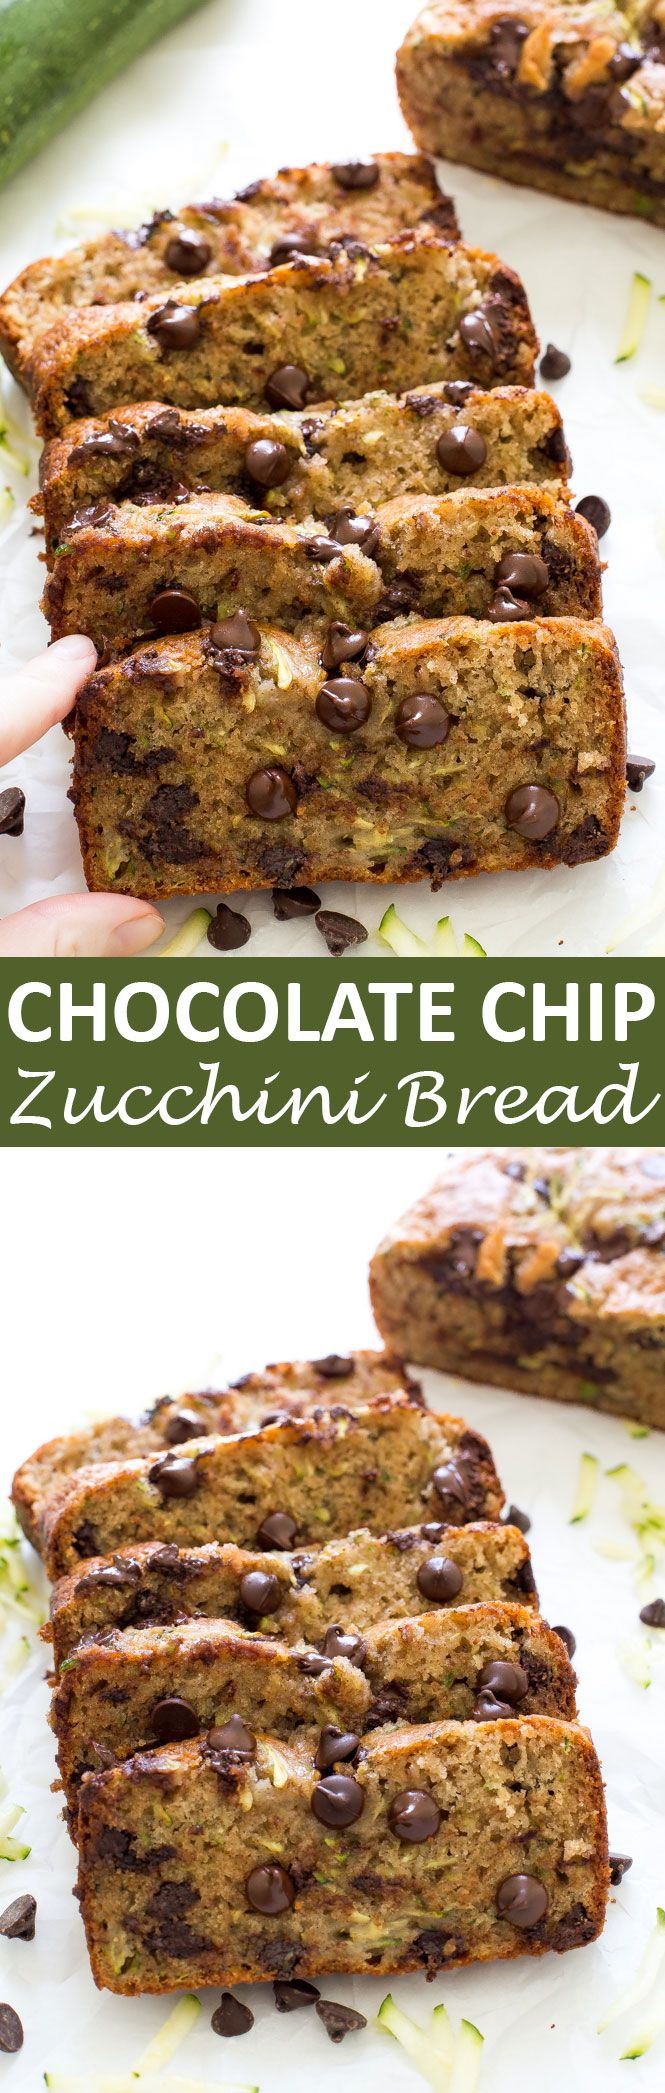 Chocolate Chip Zucchini Bread. Super moist, soft and loaded with chocolate chips! A great way to use up zucchini from your garden! | chefsavvy.com #recipe #zucchini #bread #chocolate